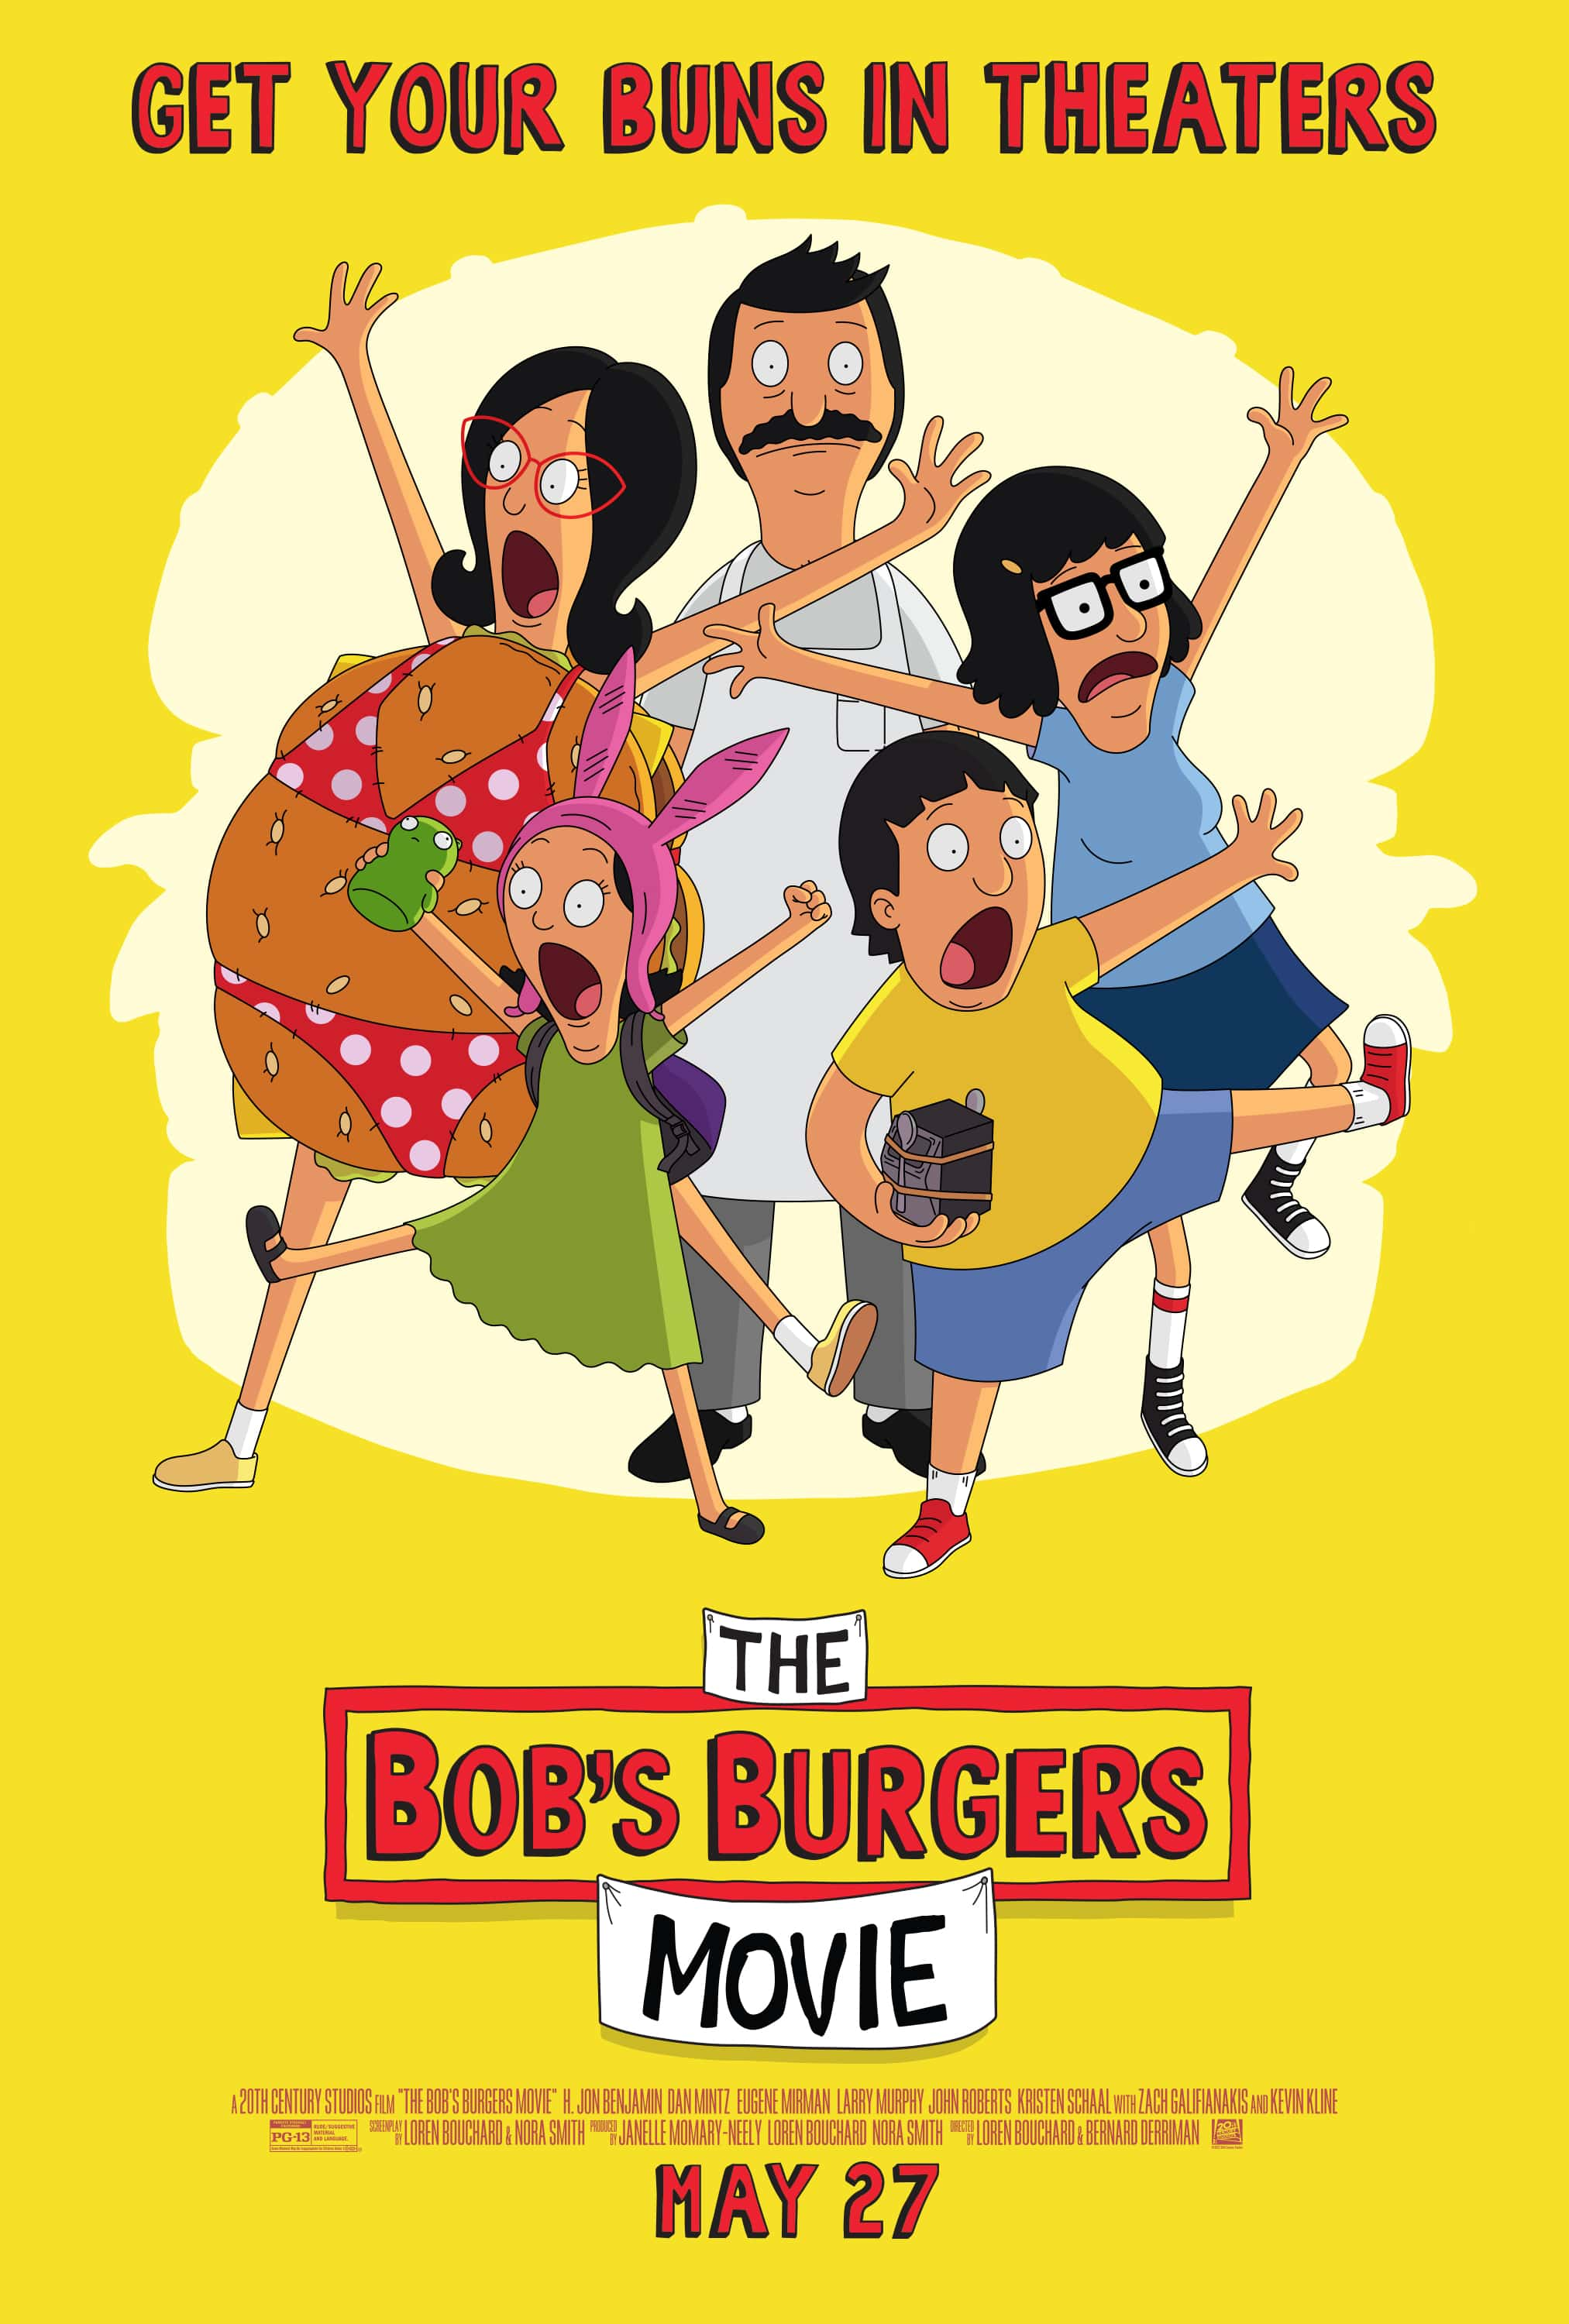 The Bobs Burgers Movie